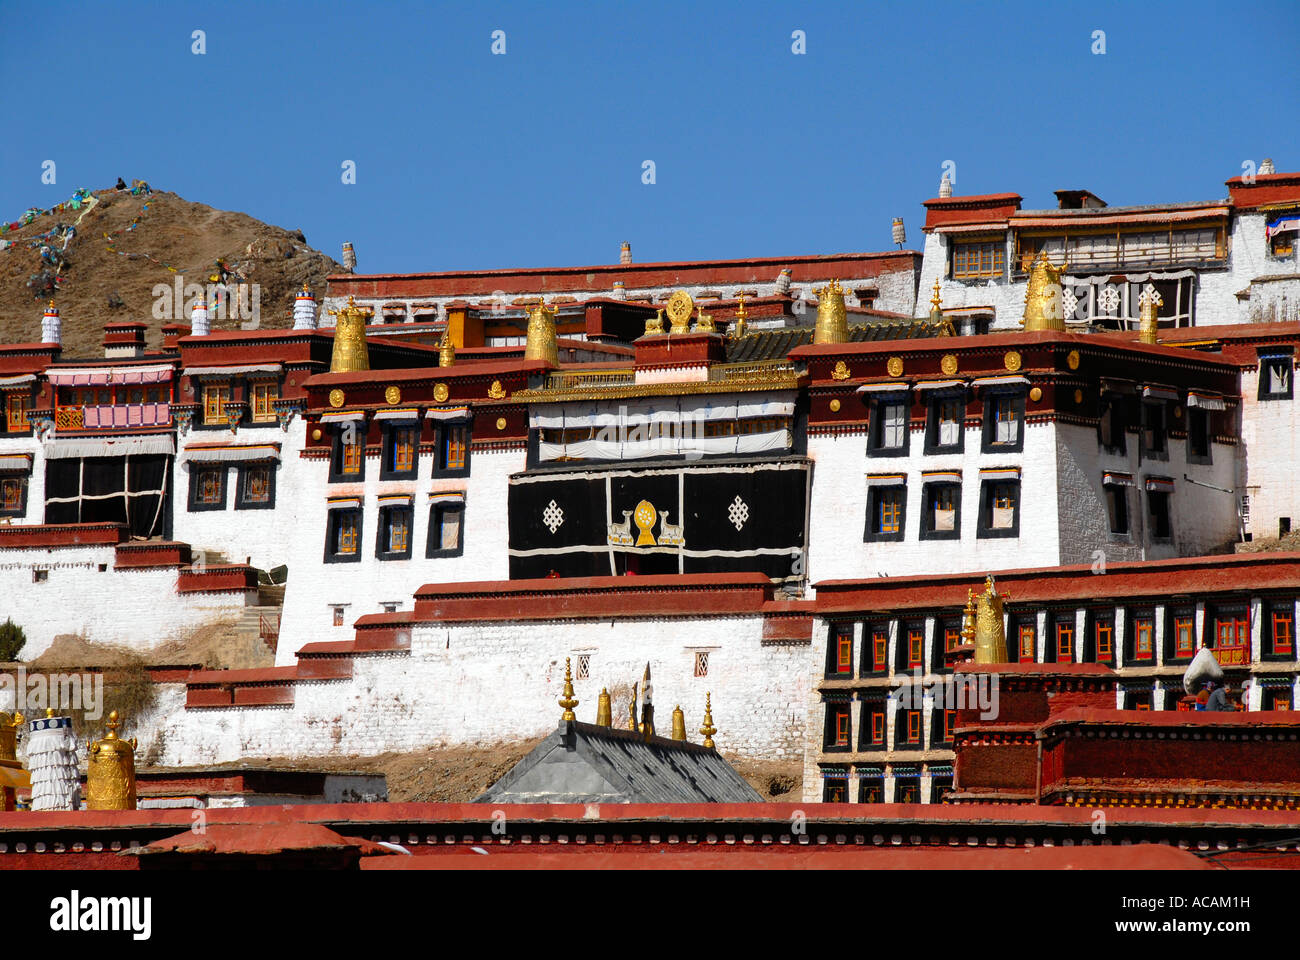 Tibetan Buddhism closely nested temples Ganden monastery Tibet China - Stock Image